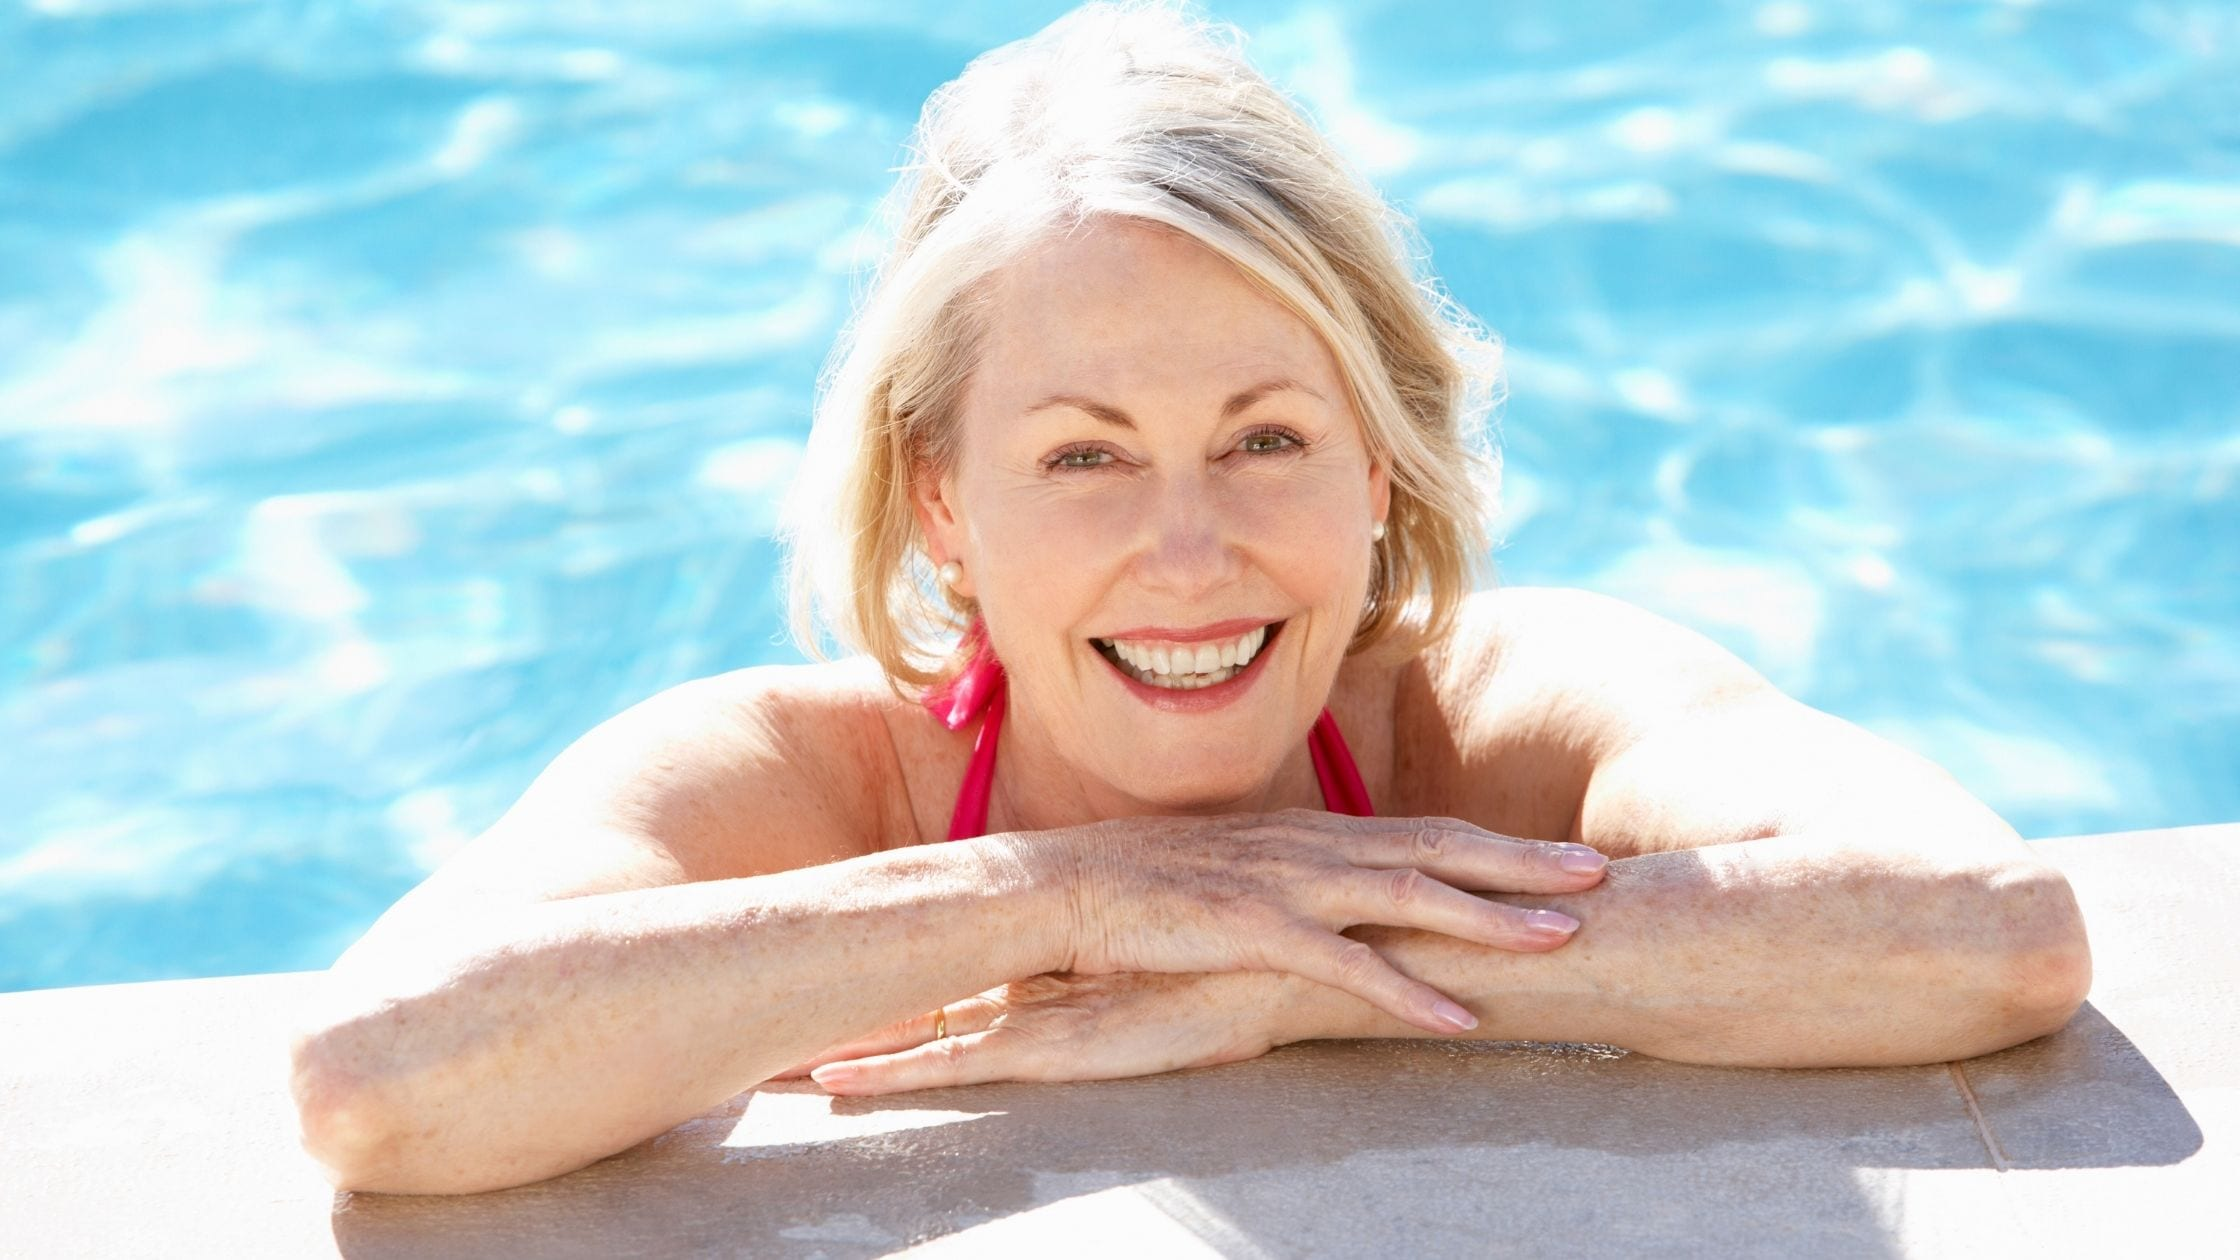 5 Tips For a Heart-Healthy Summer